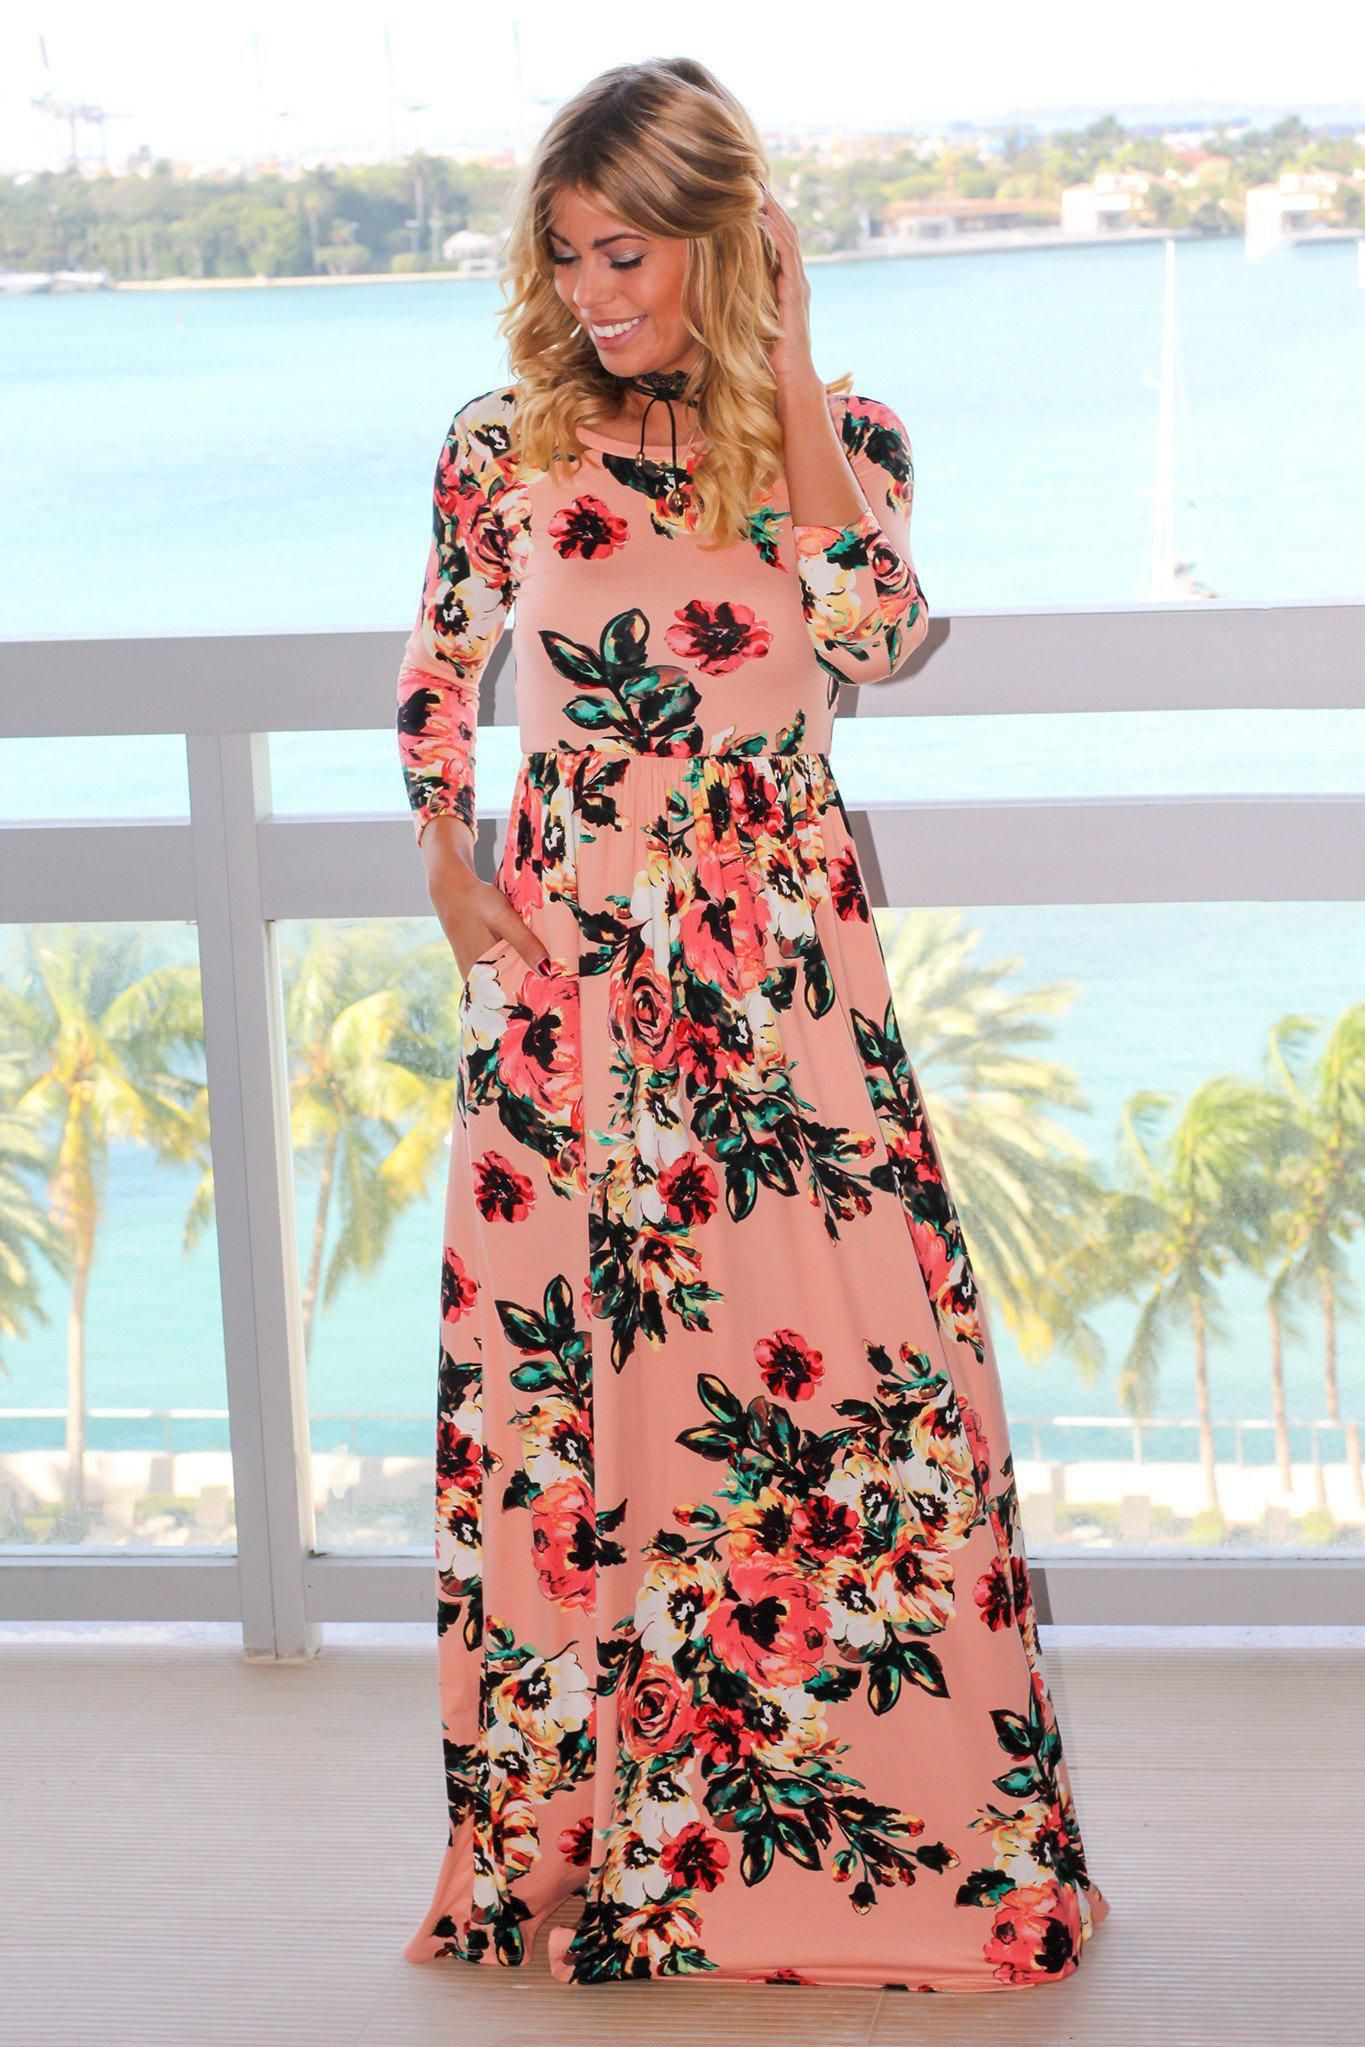 Blush Floral Maxi Dress With 3 4 Sleeves Maxi Dress With Sleeves Floral Maxi Dress Yellow Maxi Dress [ 2047 x 1365 Pixel ]